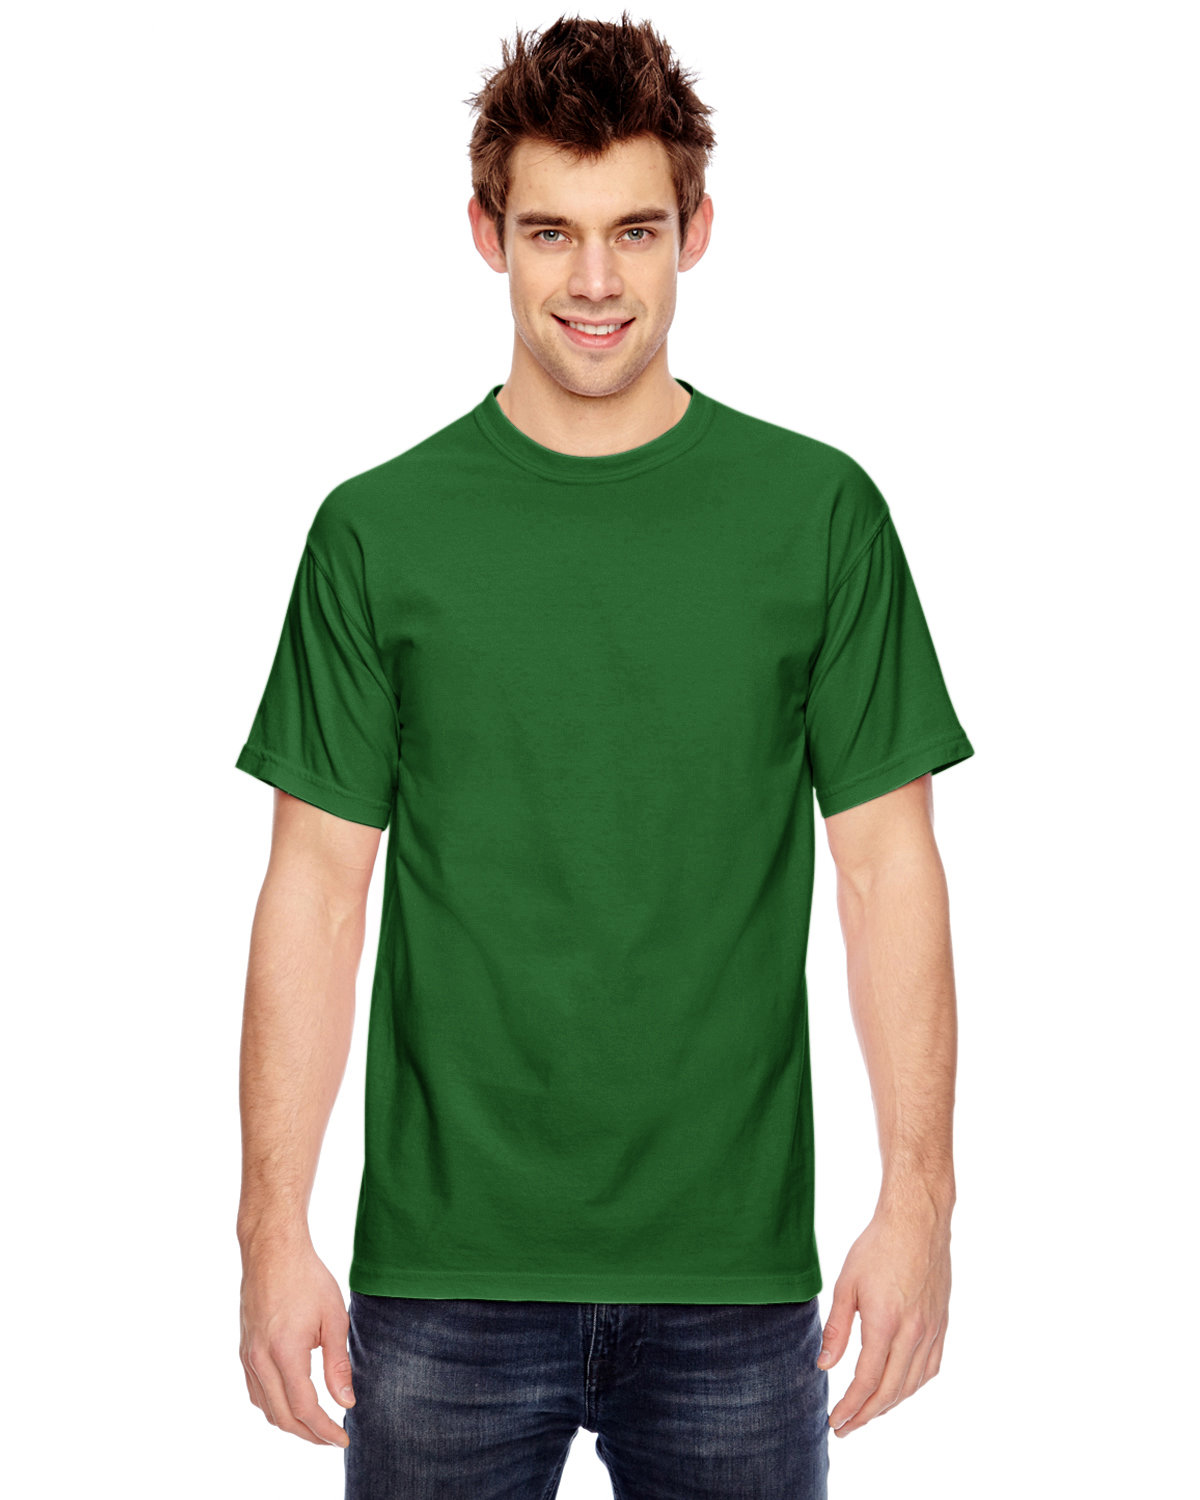 Comfort Colors Adult Heavyweight RS T-Shirt CLOVER